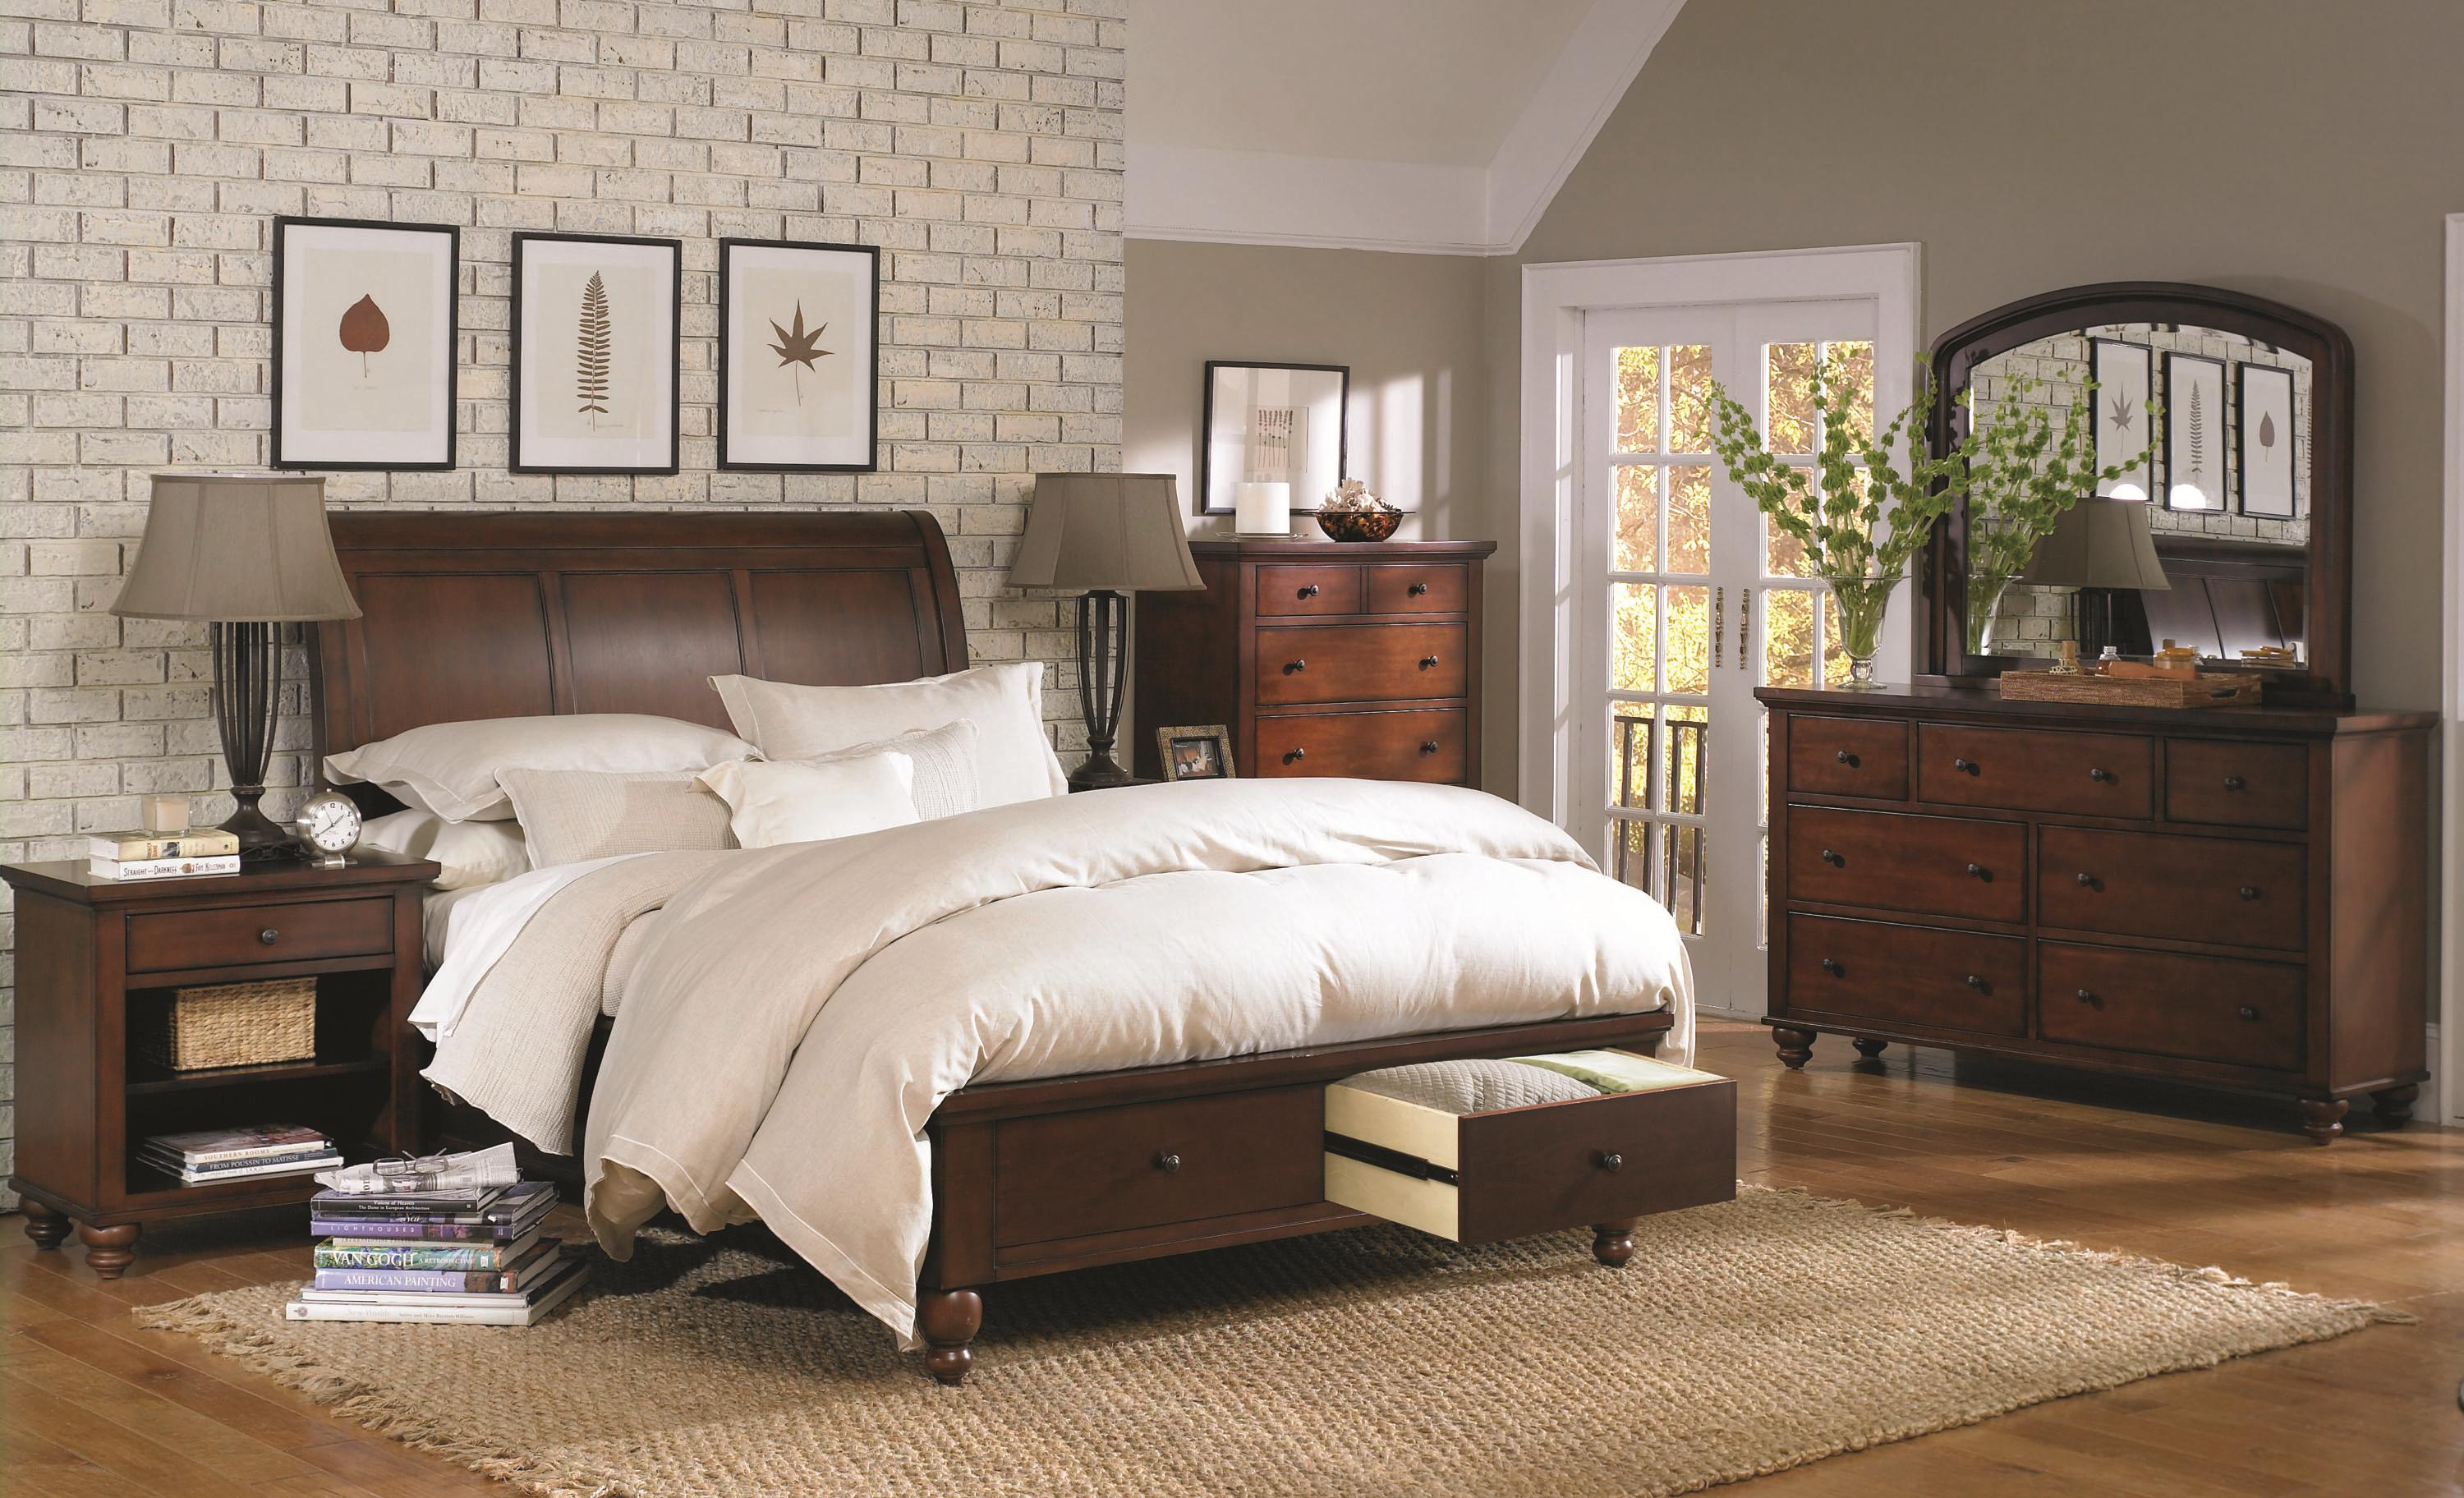 Queen Sleigh Bed With Storage Drawers And Usb Ports By Aspenhome Wolf And Gardiner Wolf Furniture